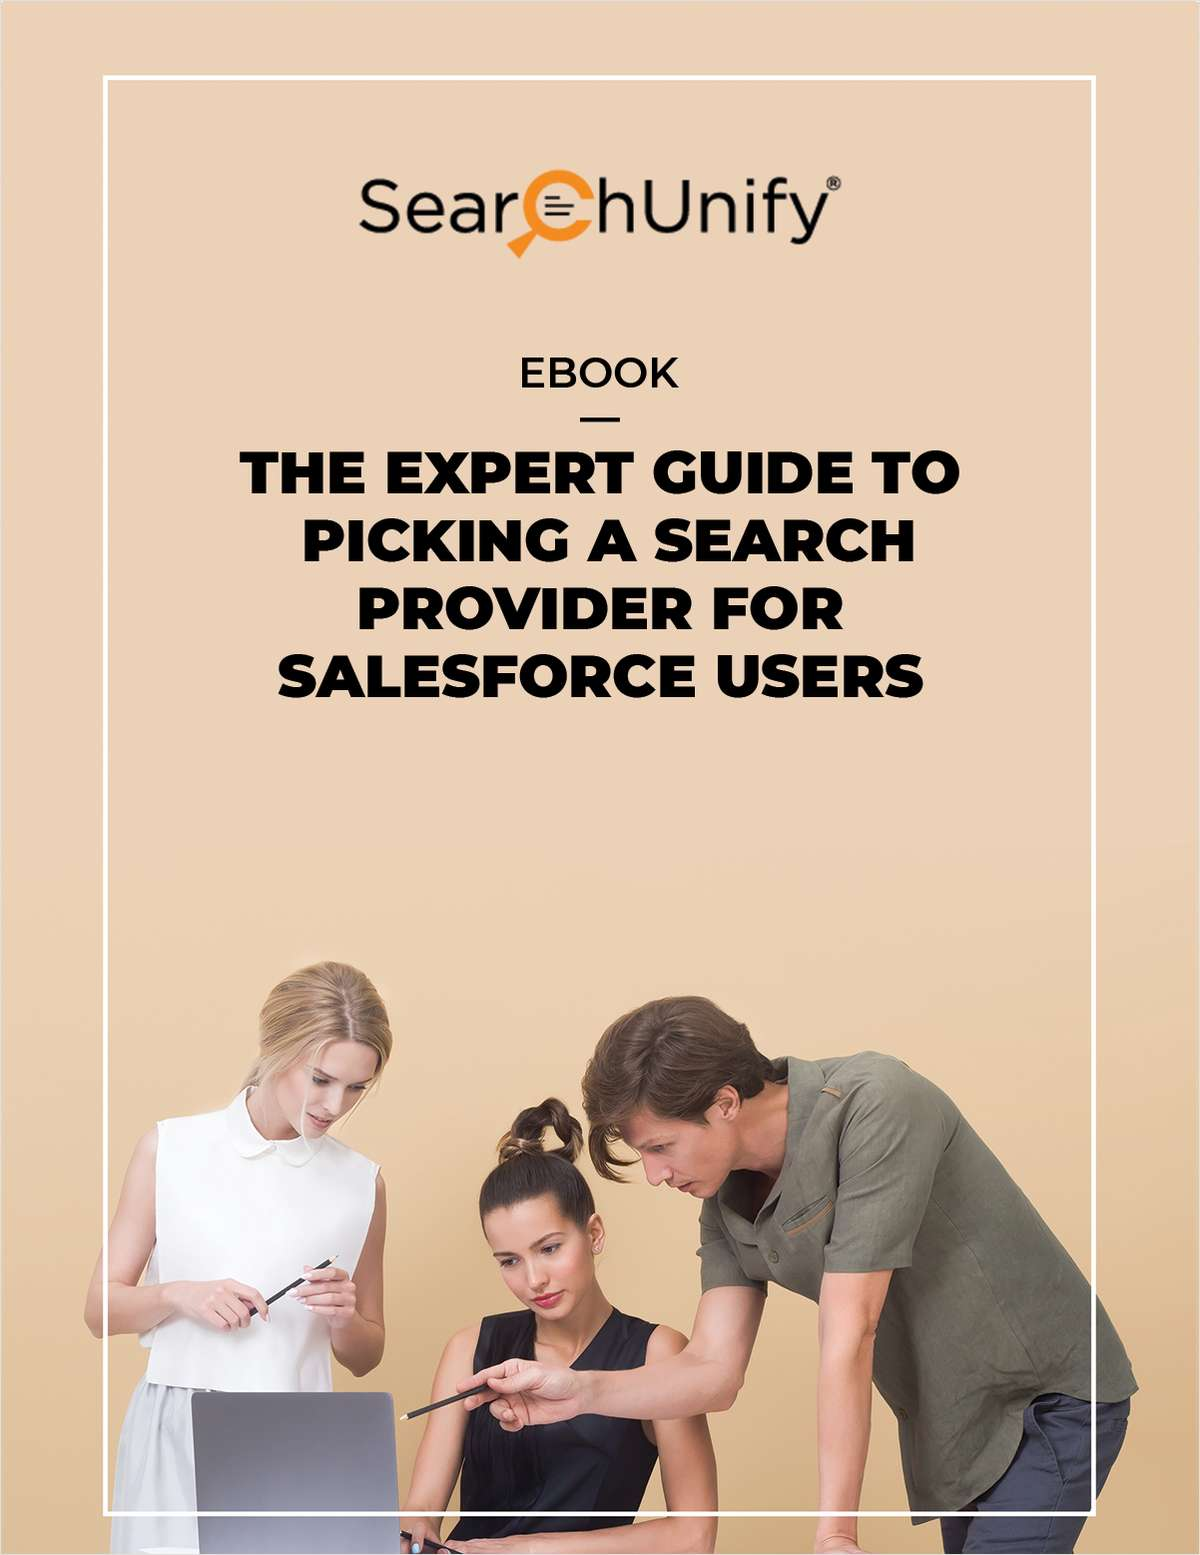 The Expert Guide to Picking a Search Provider for Salesforce Users